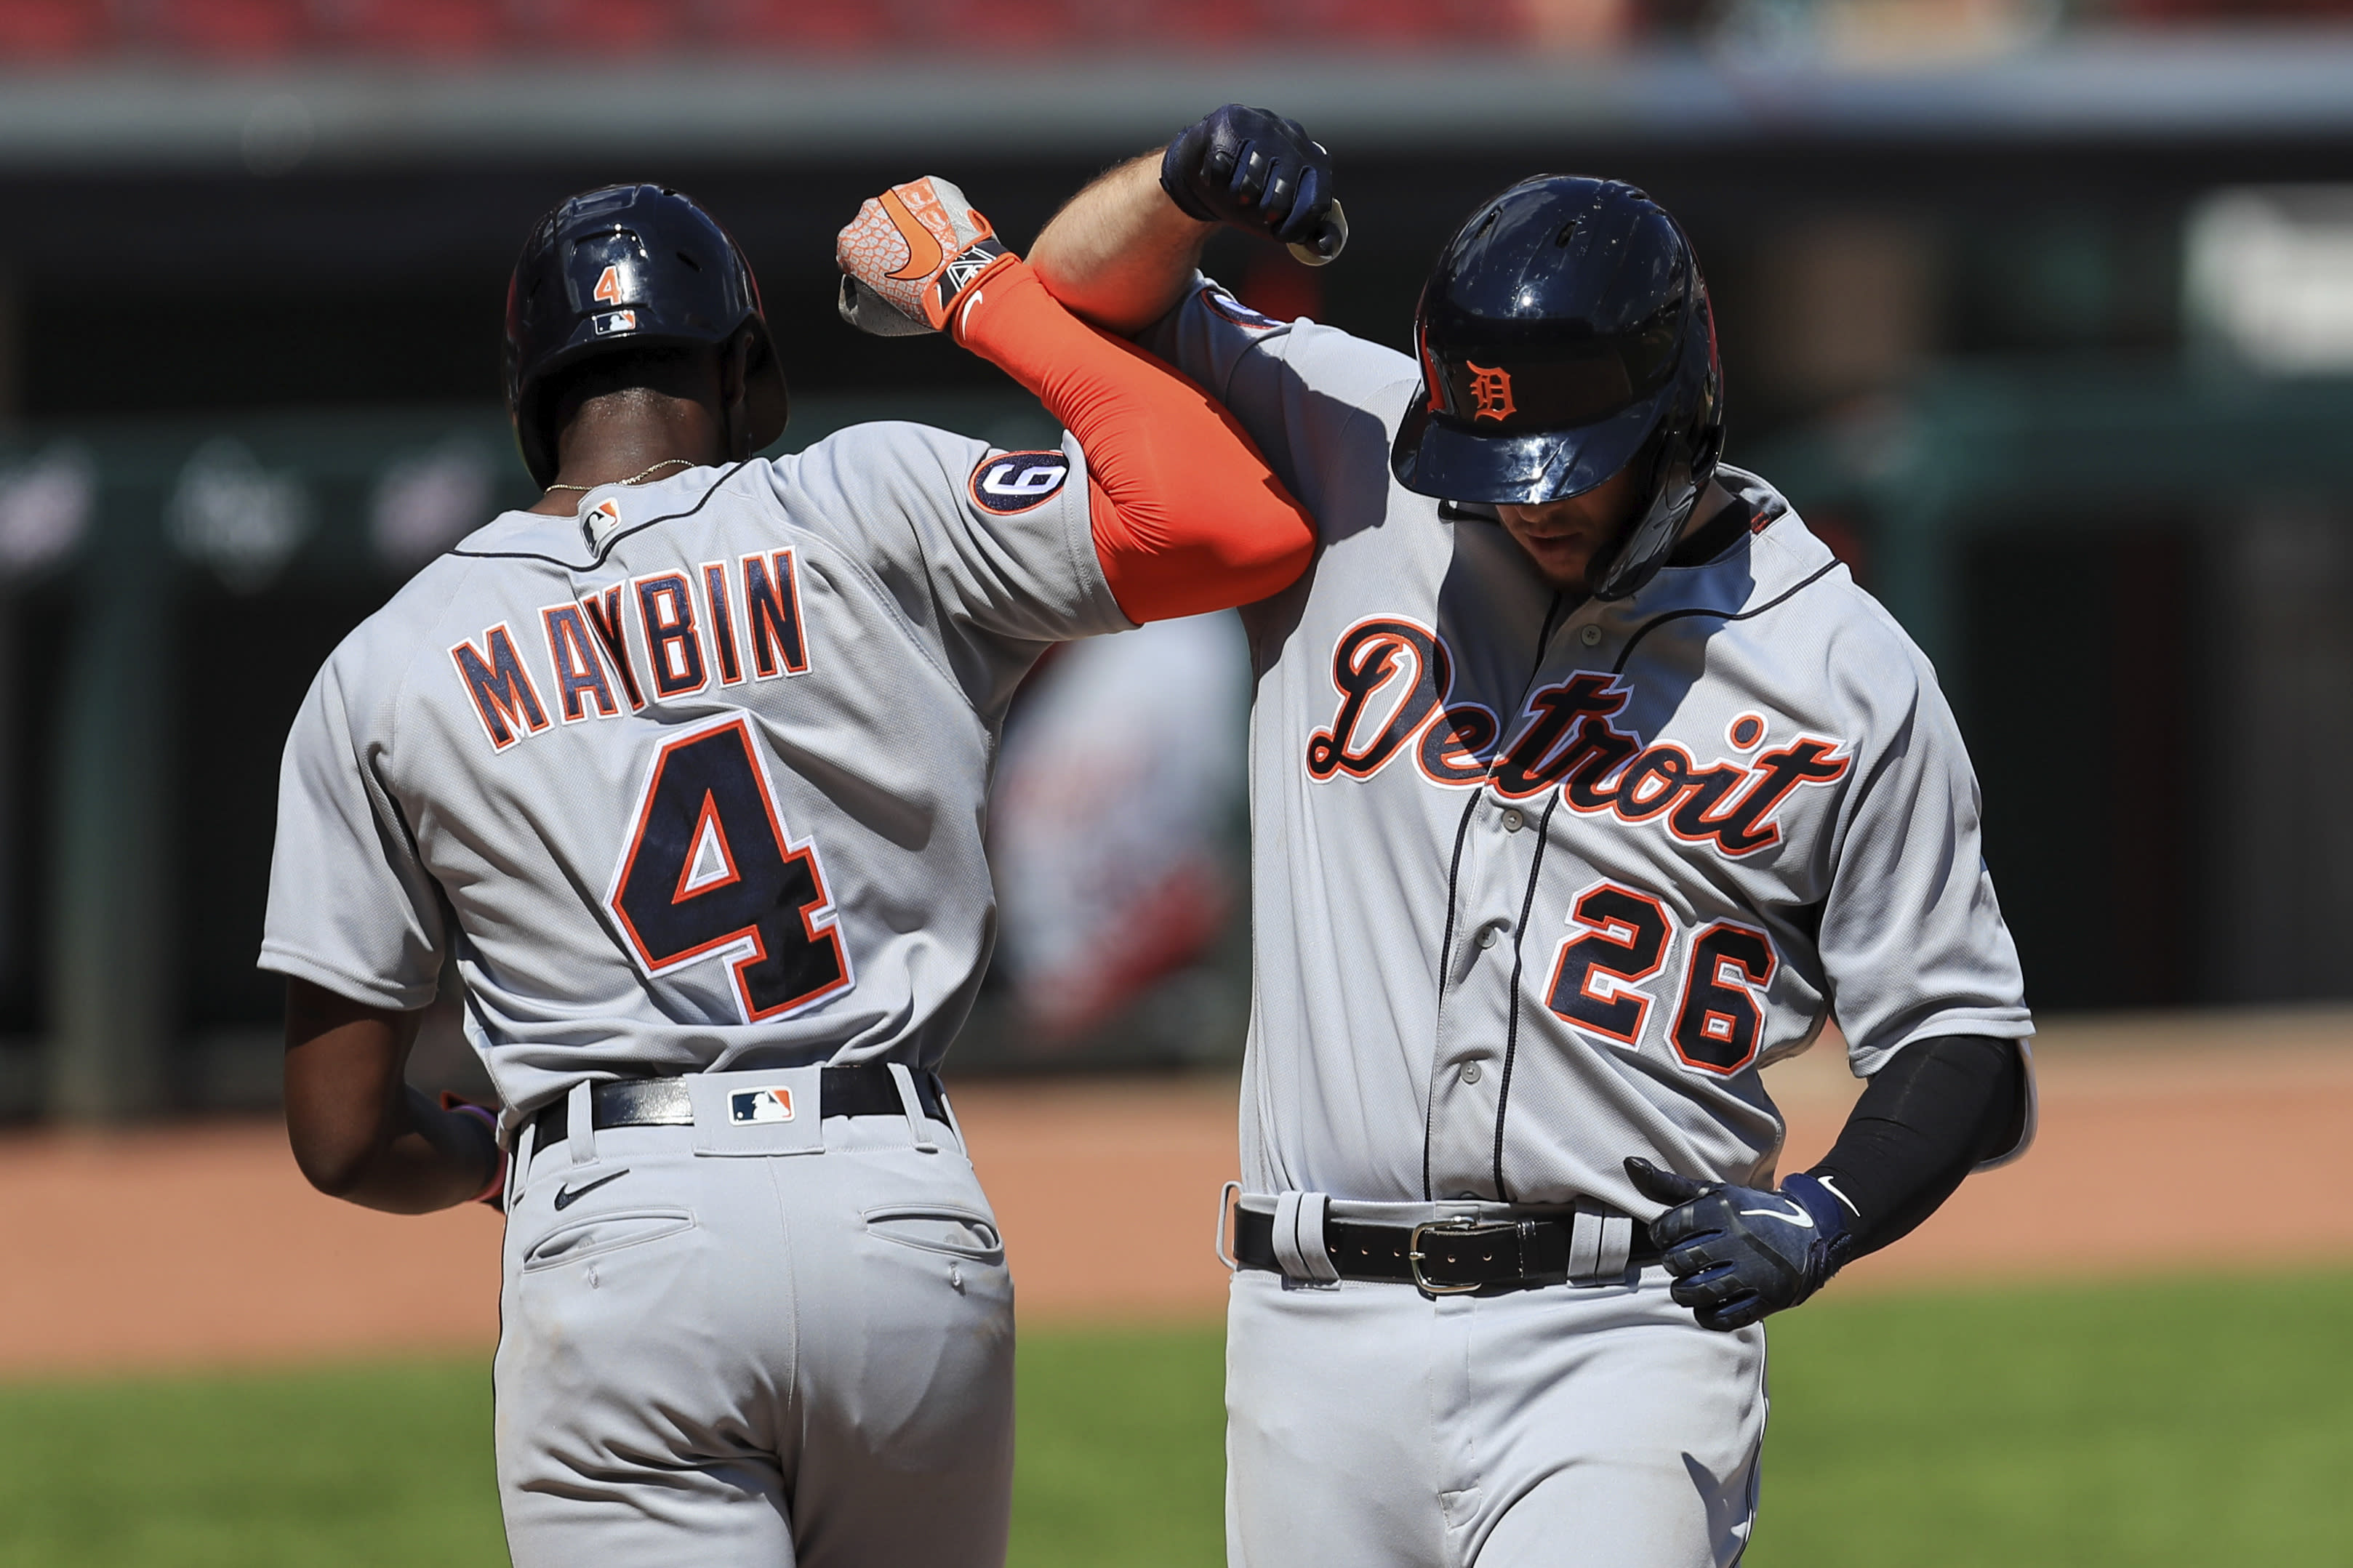 Detroit Tigers' C.J. Cron (26) celebrates with Cameron Maybin (4) after hitting a two-run home run in the ninth inning during a baseball game against the Detroit Tigers at Great American Ballpark in Cincinnati, Sunday, July 26, 2020. (AP Photo/Aaron Doster)